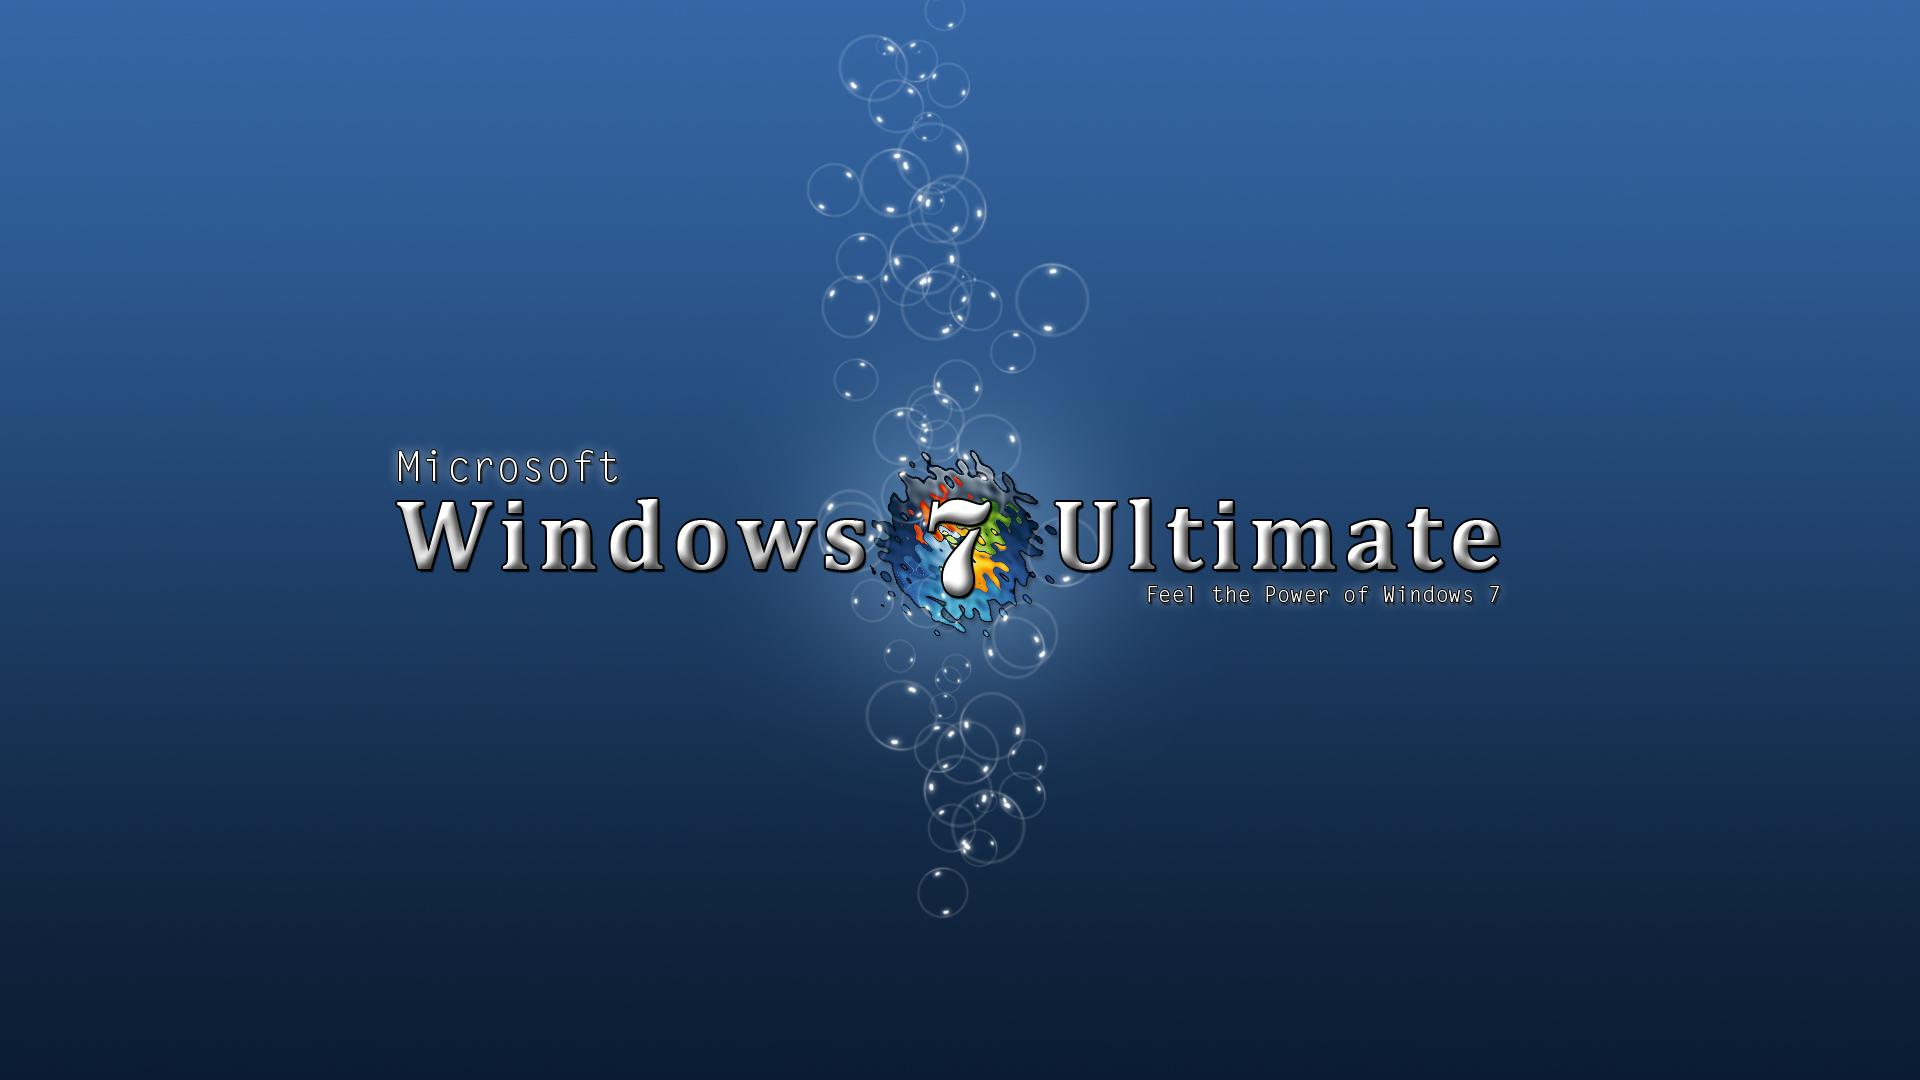 Windows 7 Ultimate Wallpapers Free Download ...